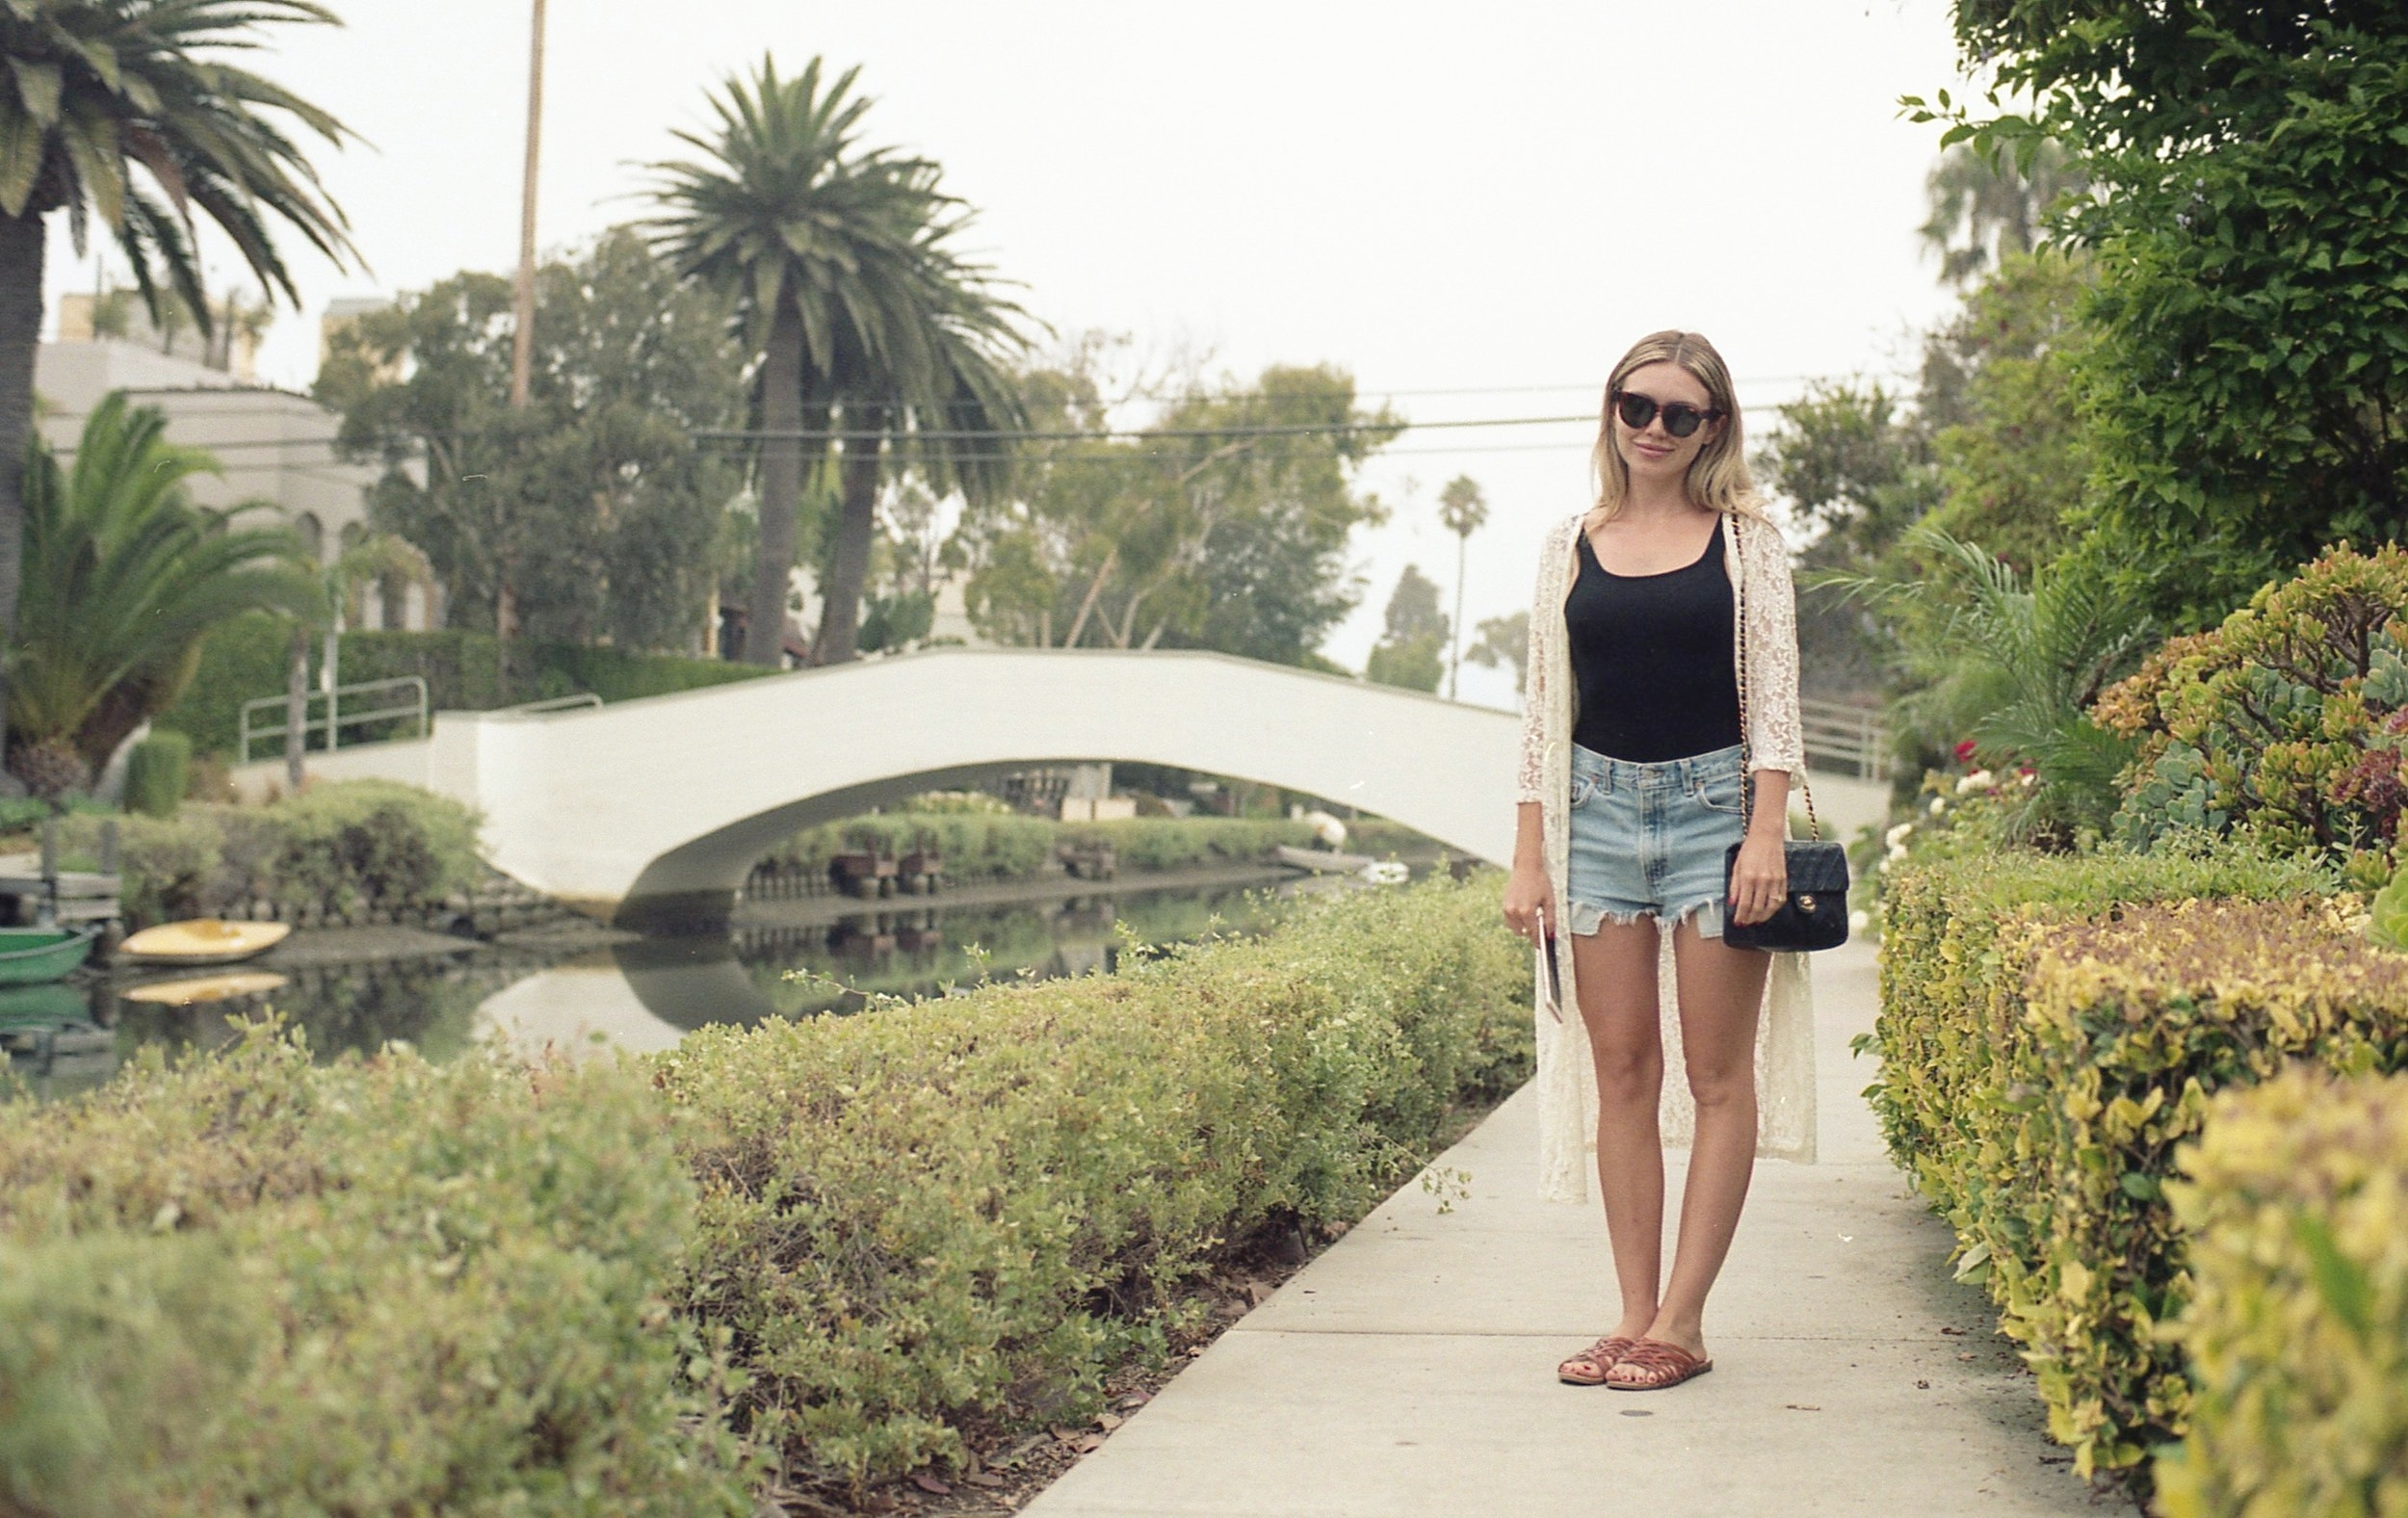 The Venice Beach Canals